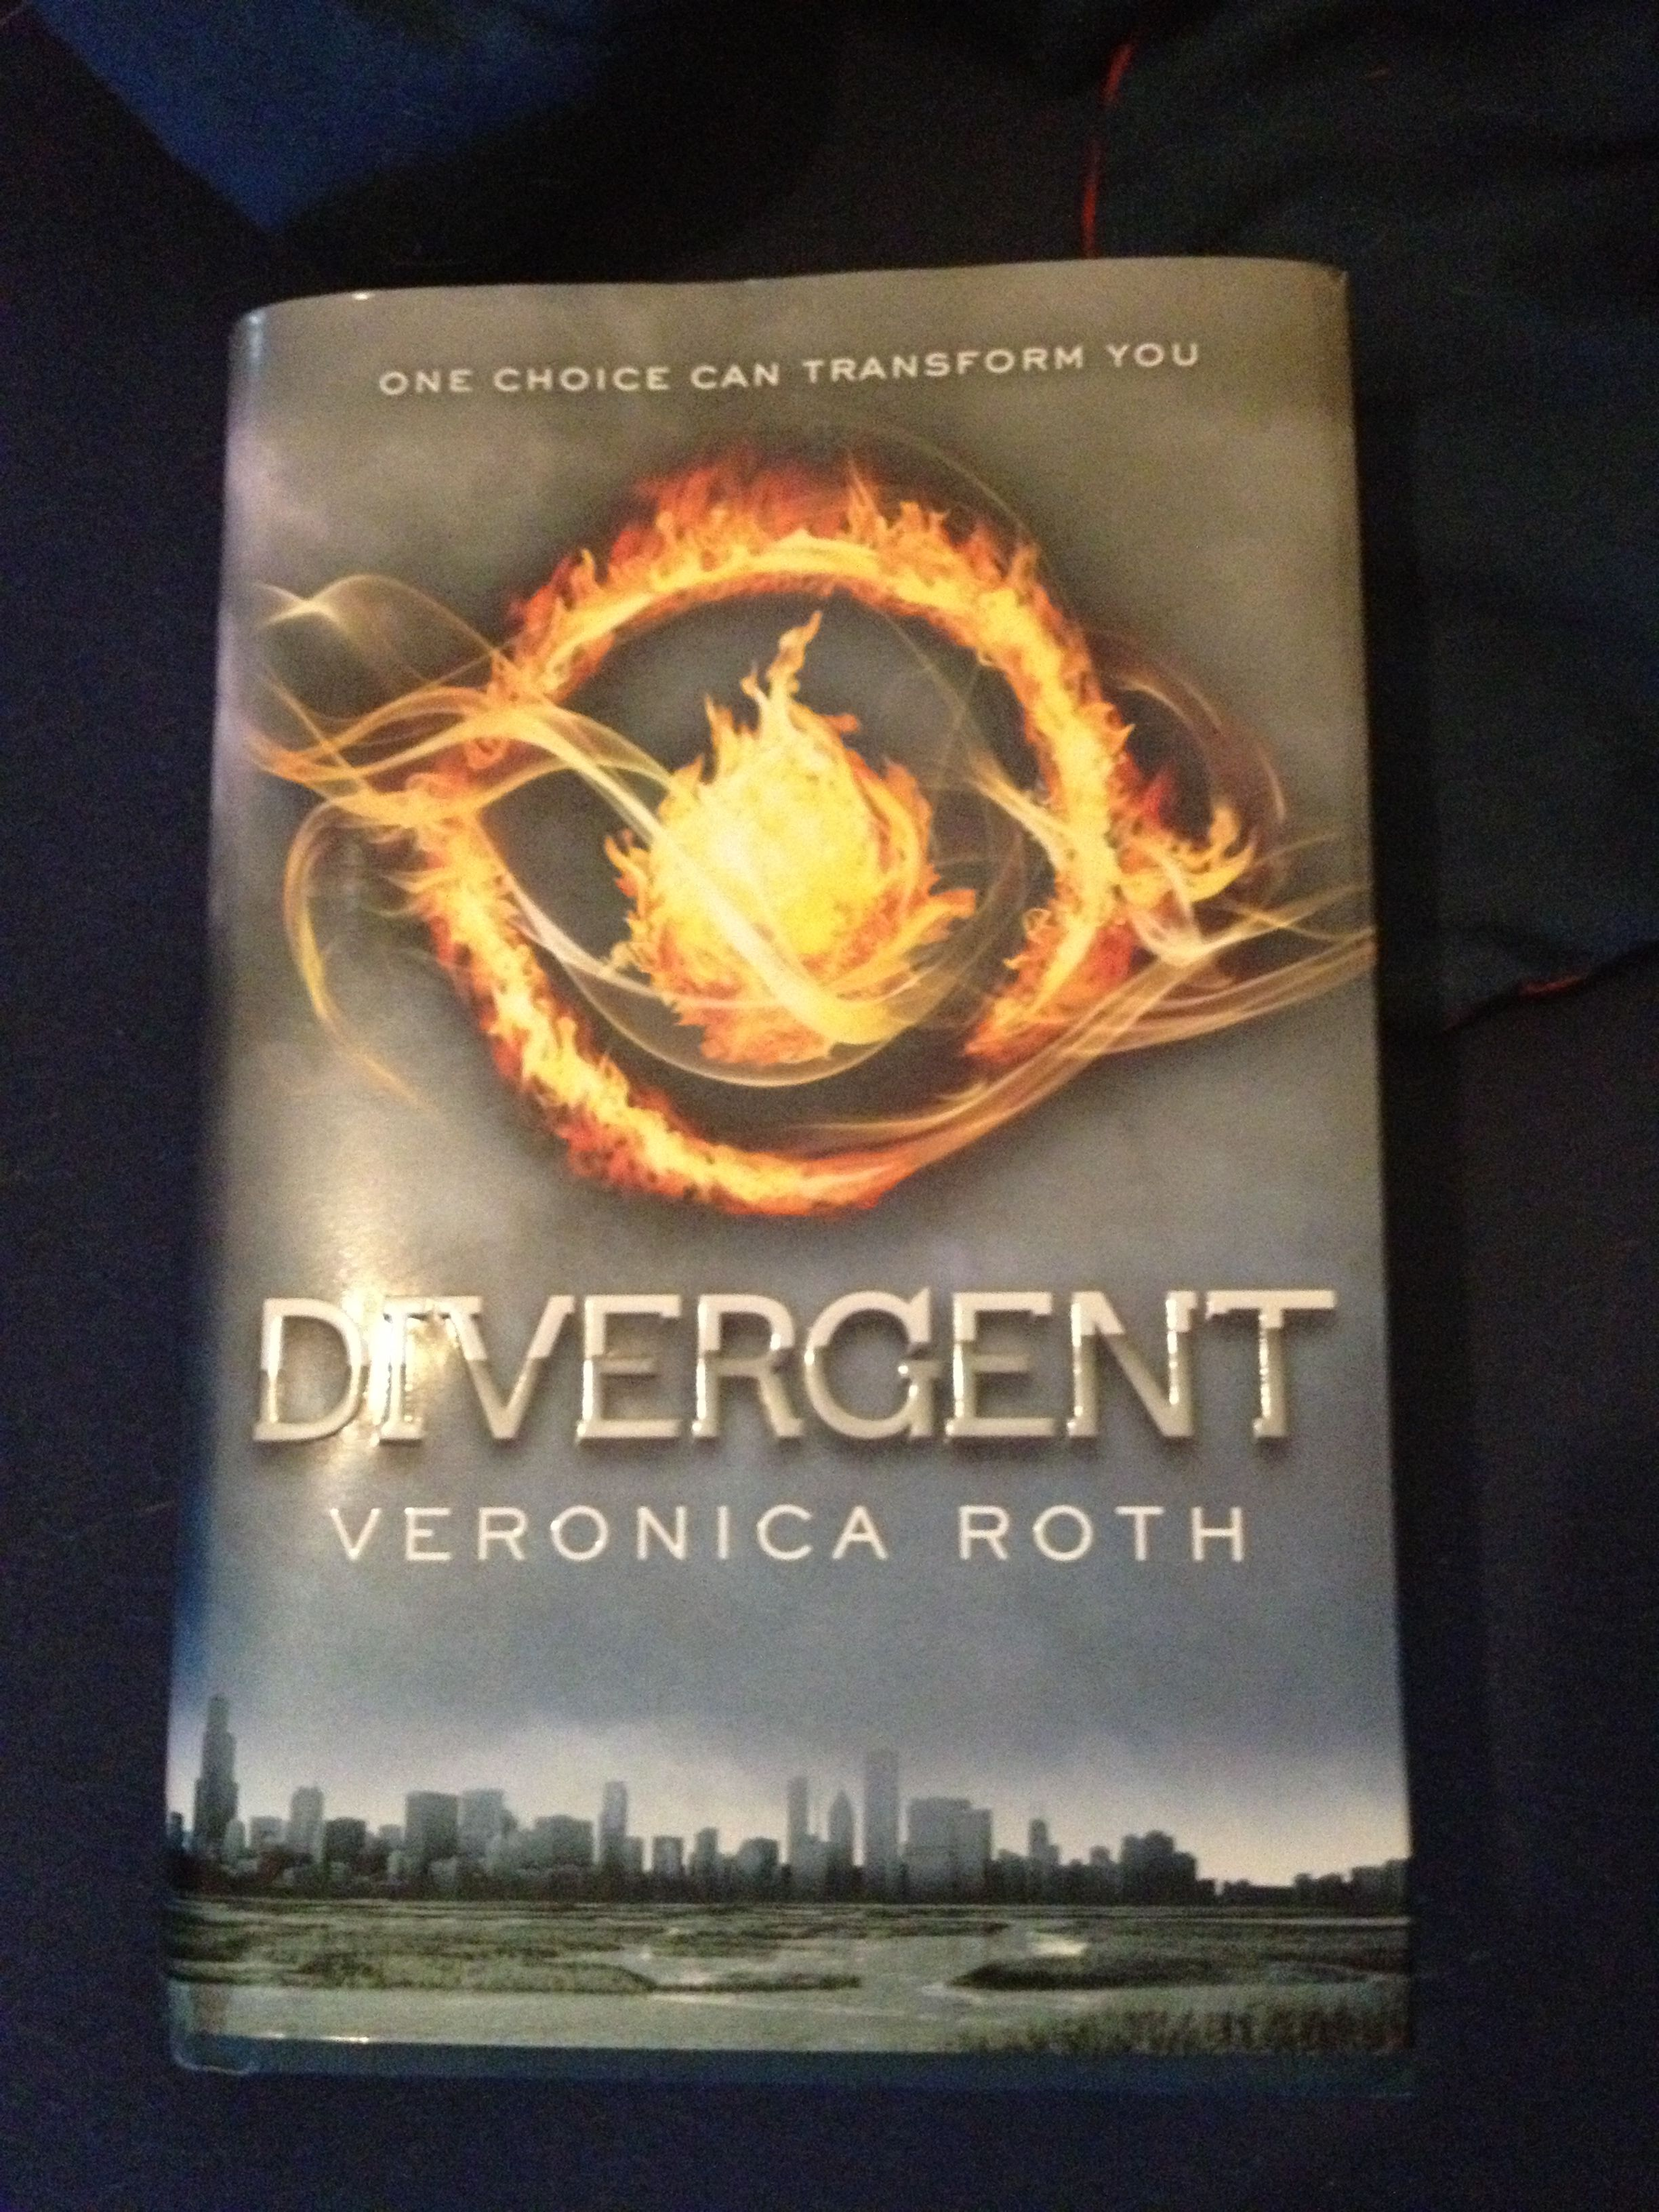 Cant wait for the movie and the last book divergent